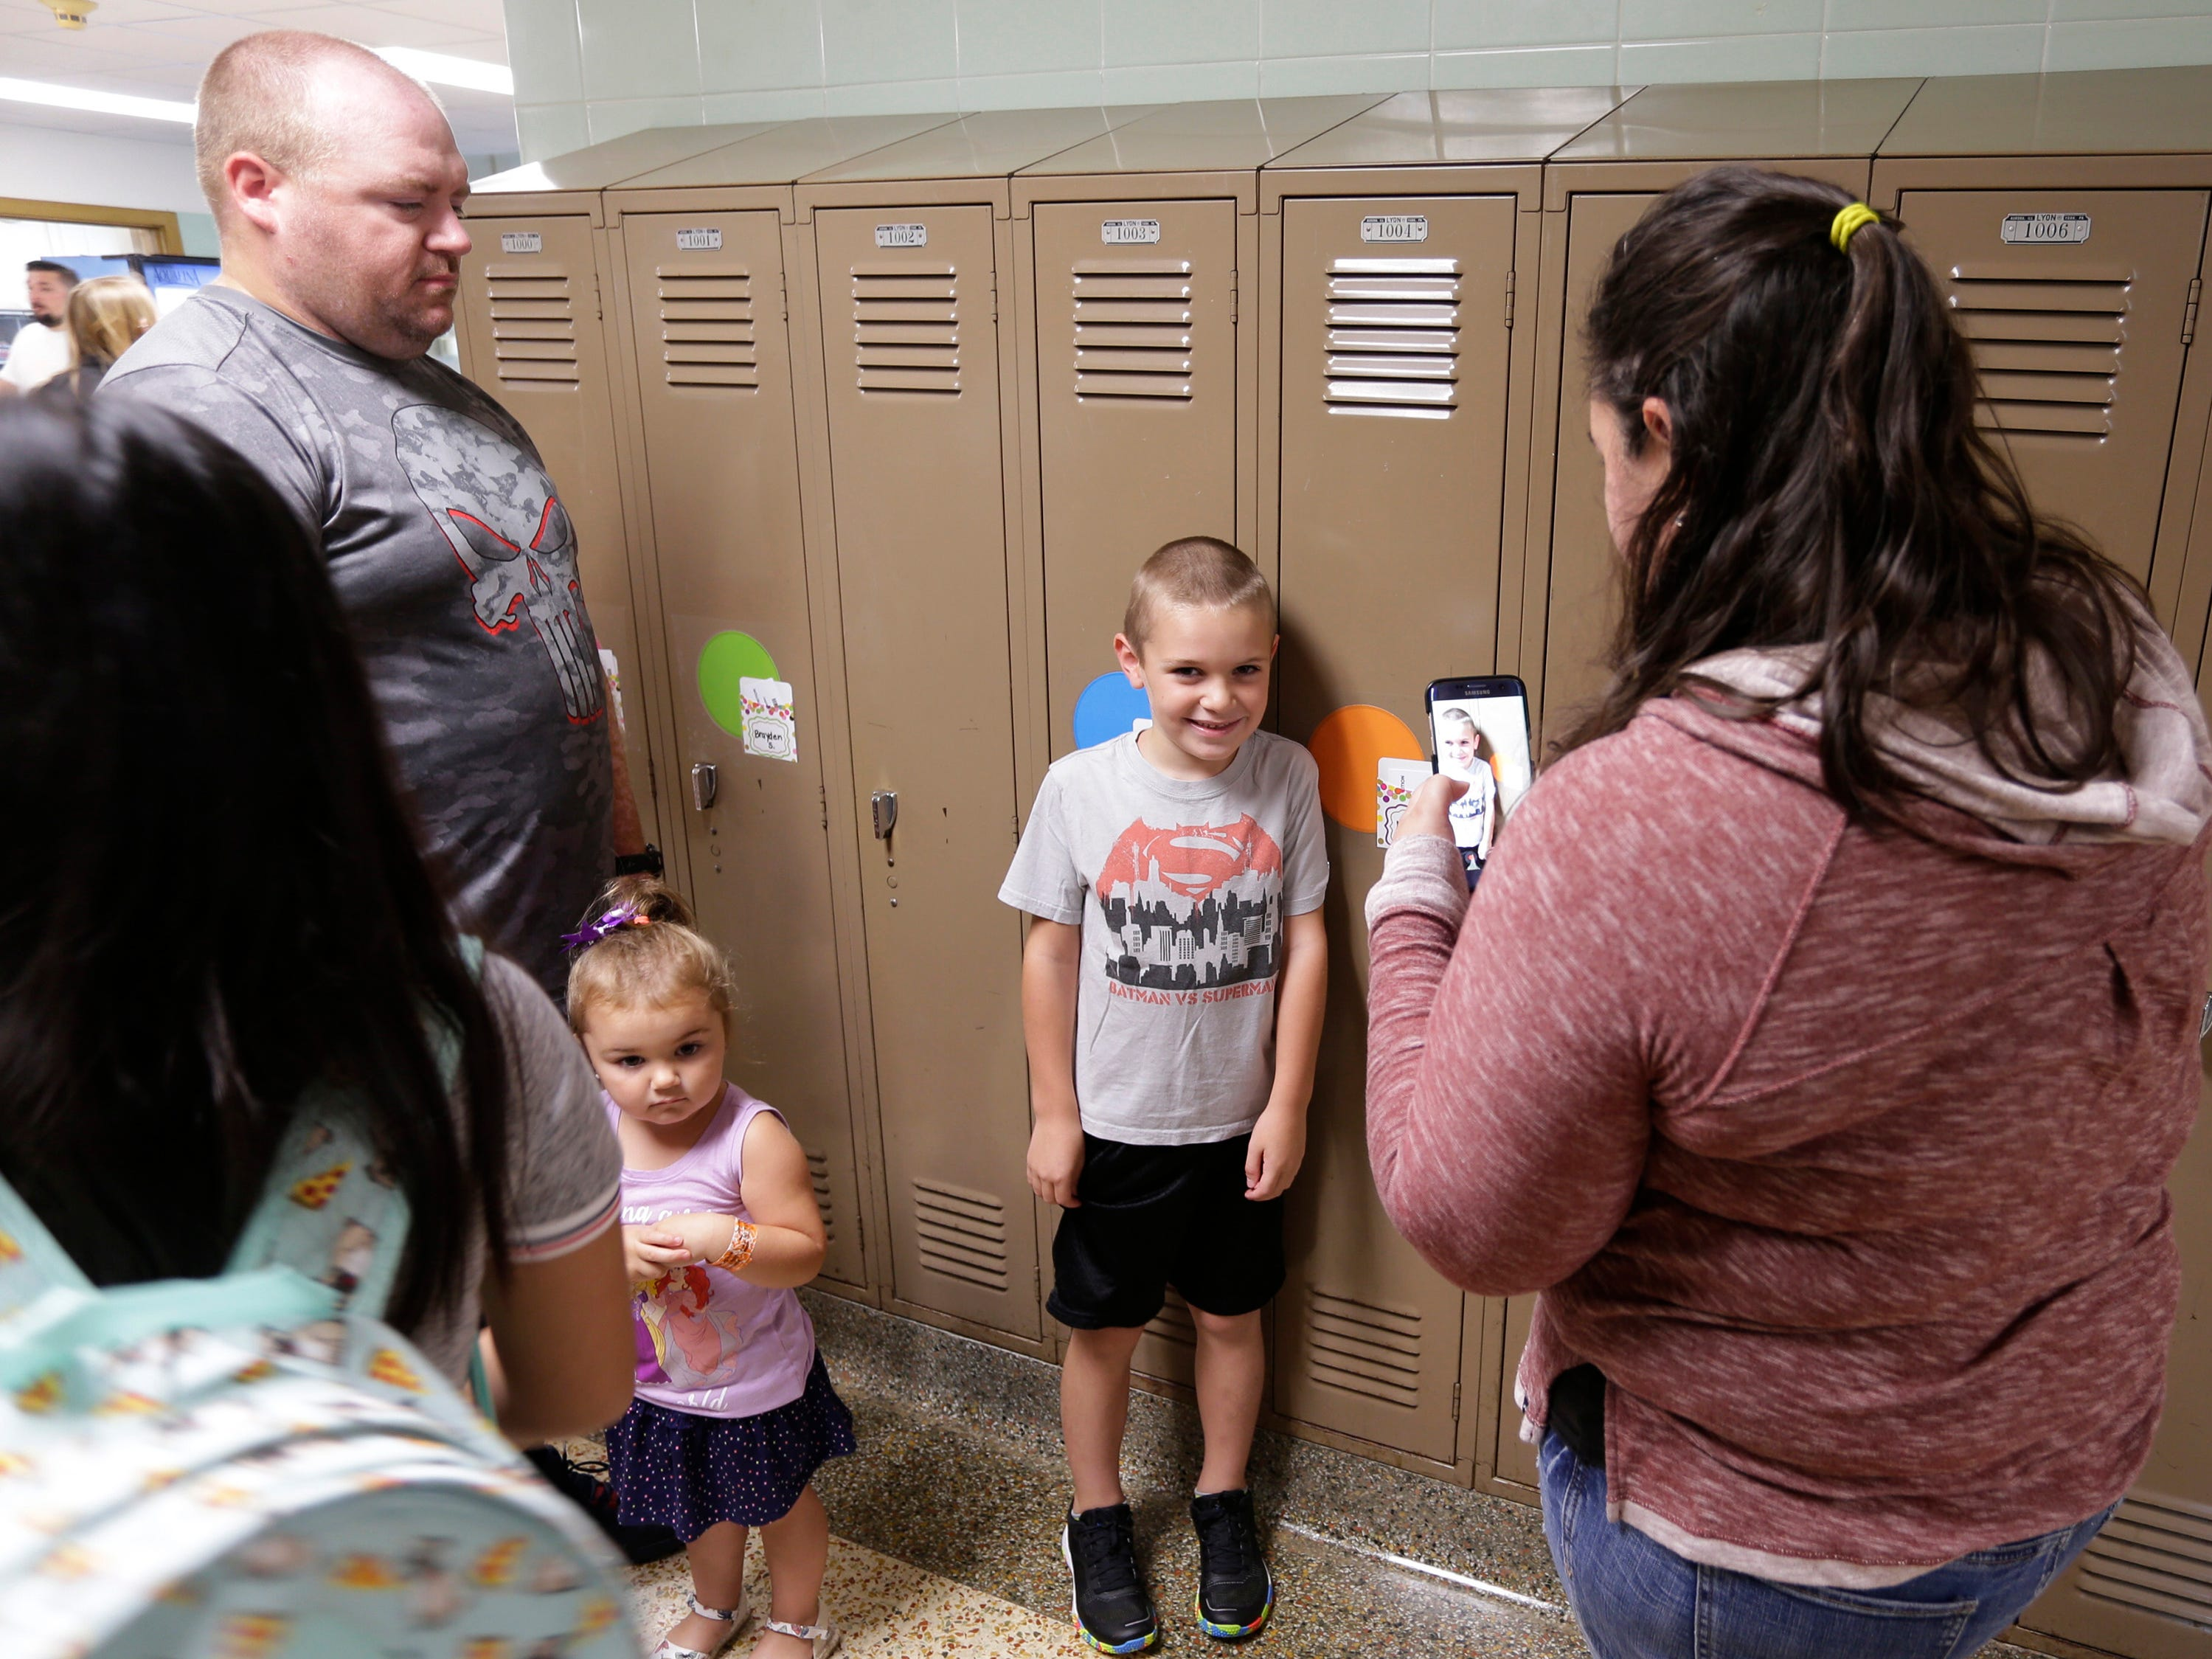 Nicole Graf, right, snaps a photo of her son Dylan, 6, center, while her husband Nate and daughter Brooklyn, 3, observes at Wilson Elementary School, Tuesday, September 4, 2018, in Sheboygan, Wis.  Dylan will be a first grader at the school that has seen many renovations during recent construction.